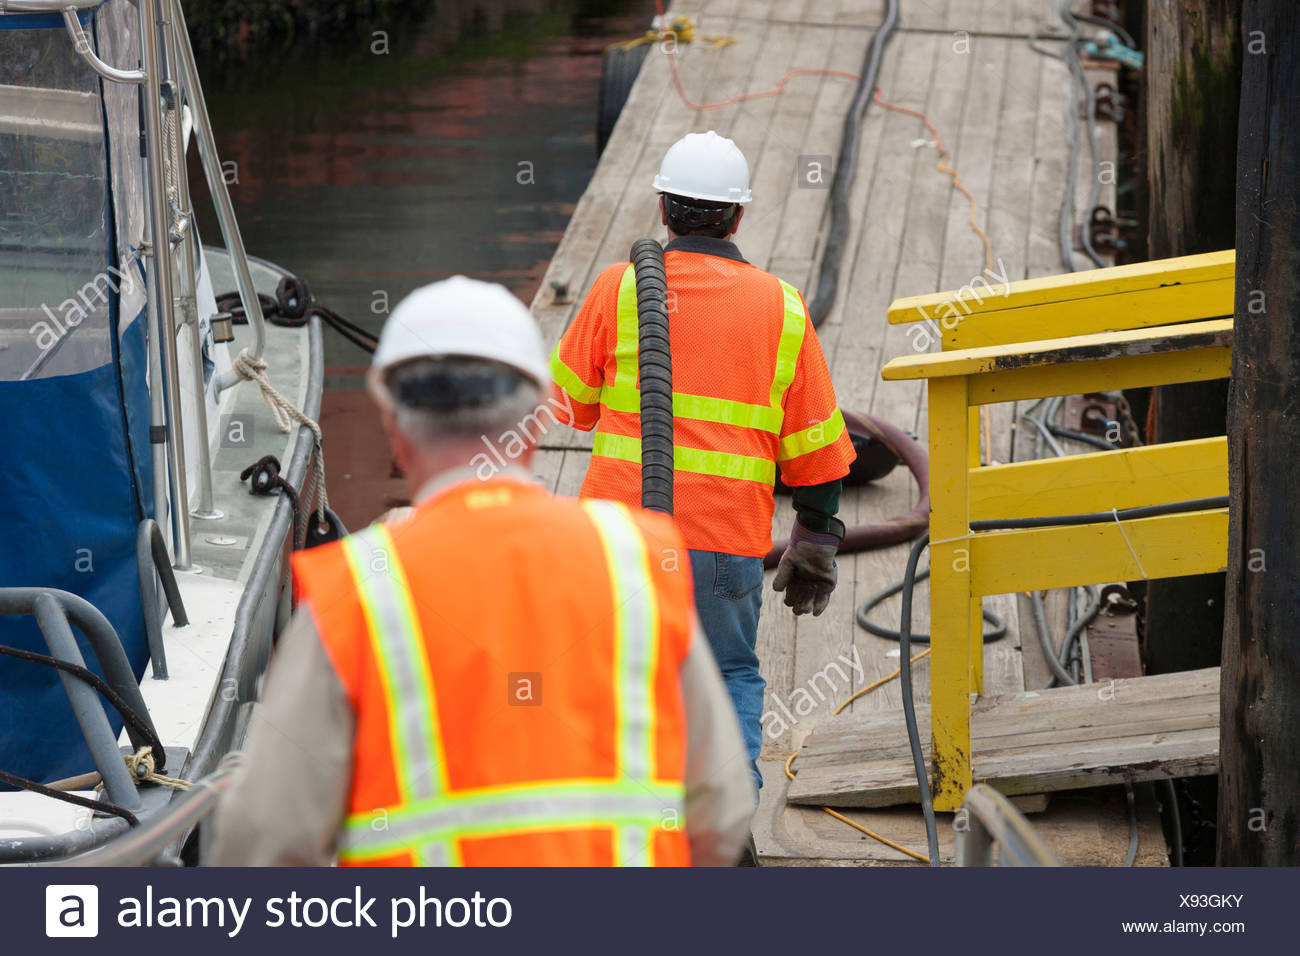 Environmental engineers extending petroleum hose for toxic waste cleanup to commercial ship - Stock Image